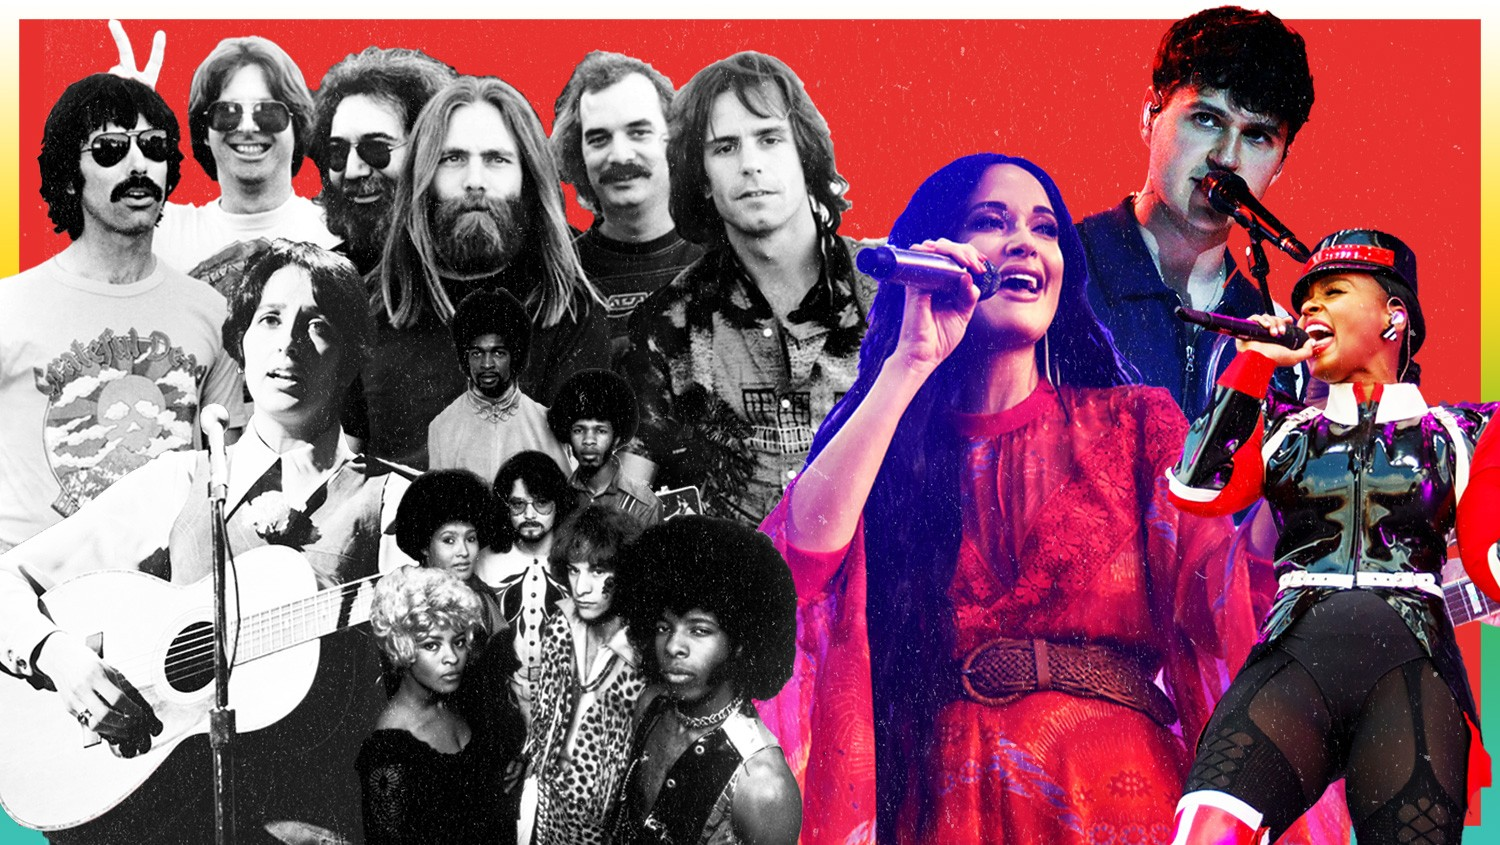 Grateful Dead, Sly and the Family Stone, Joan Baez, Kacey Musgraves, Ezra Koenig of Vampire Weekend and Janelle Monáe